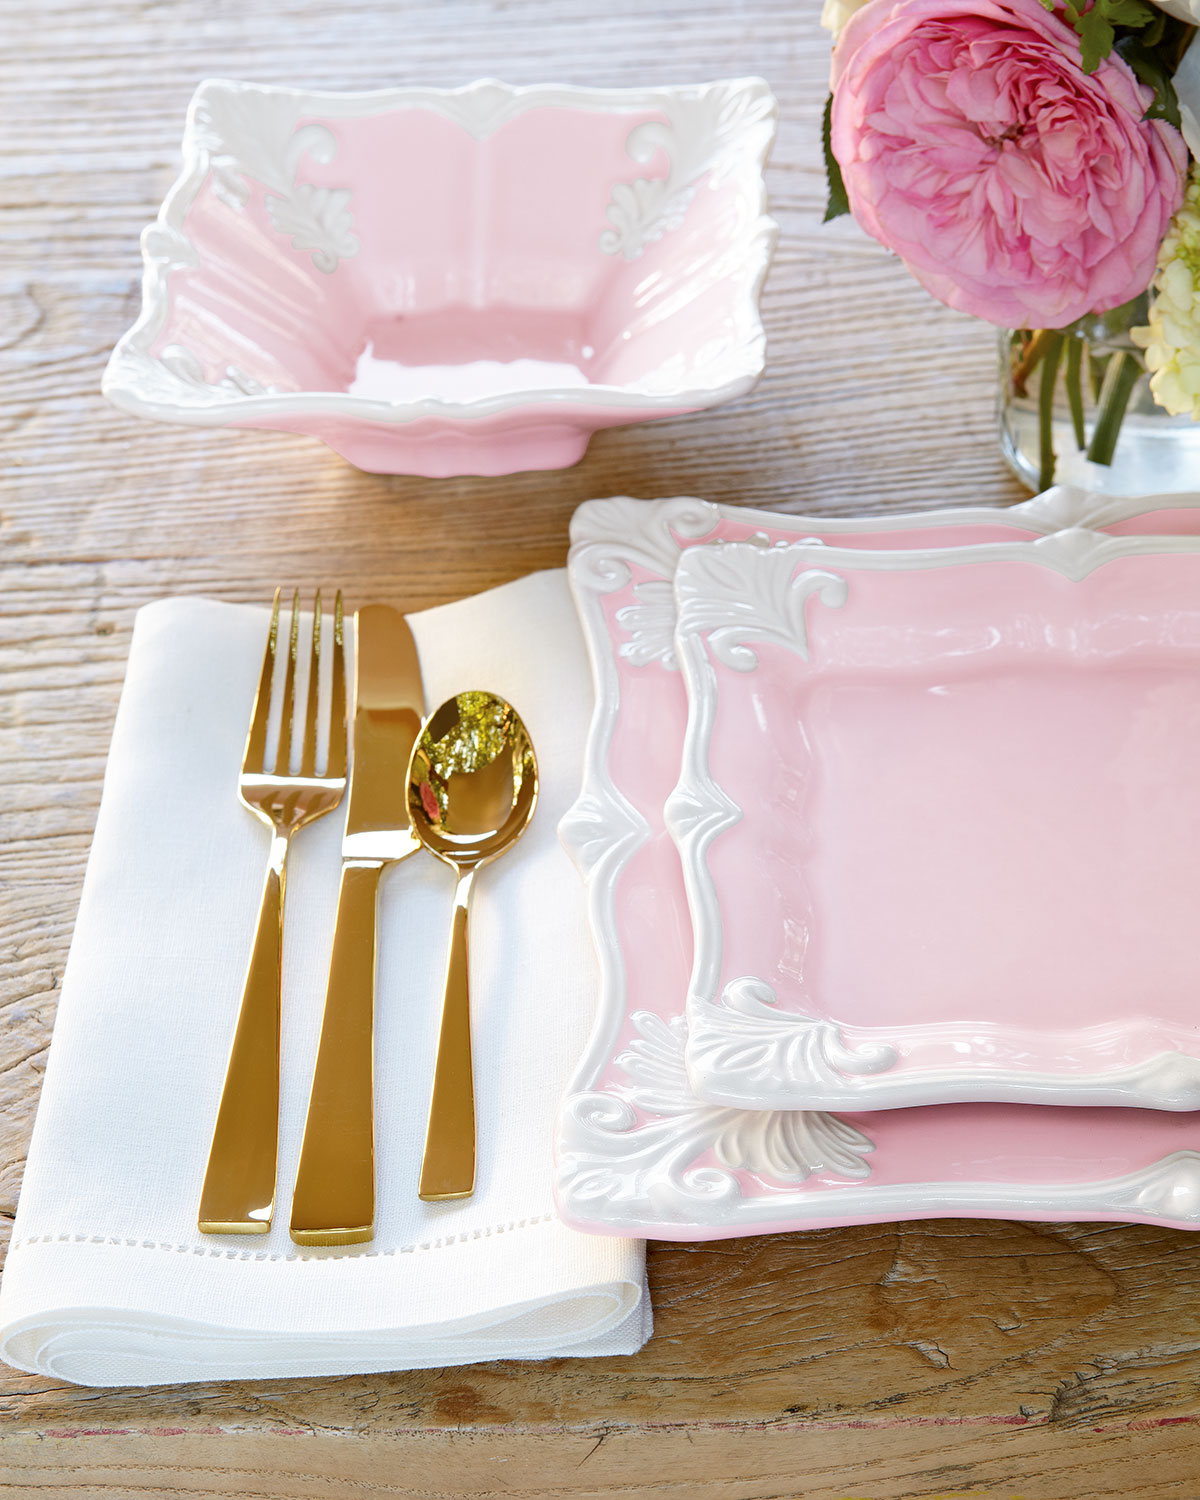 Table Setting Wedding Pink And White Dinnerware Plates Dining Room Gold Cutlery Fork Knives Plated Y